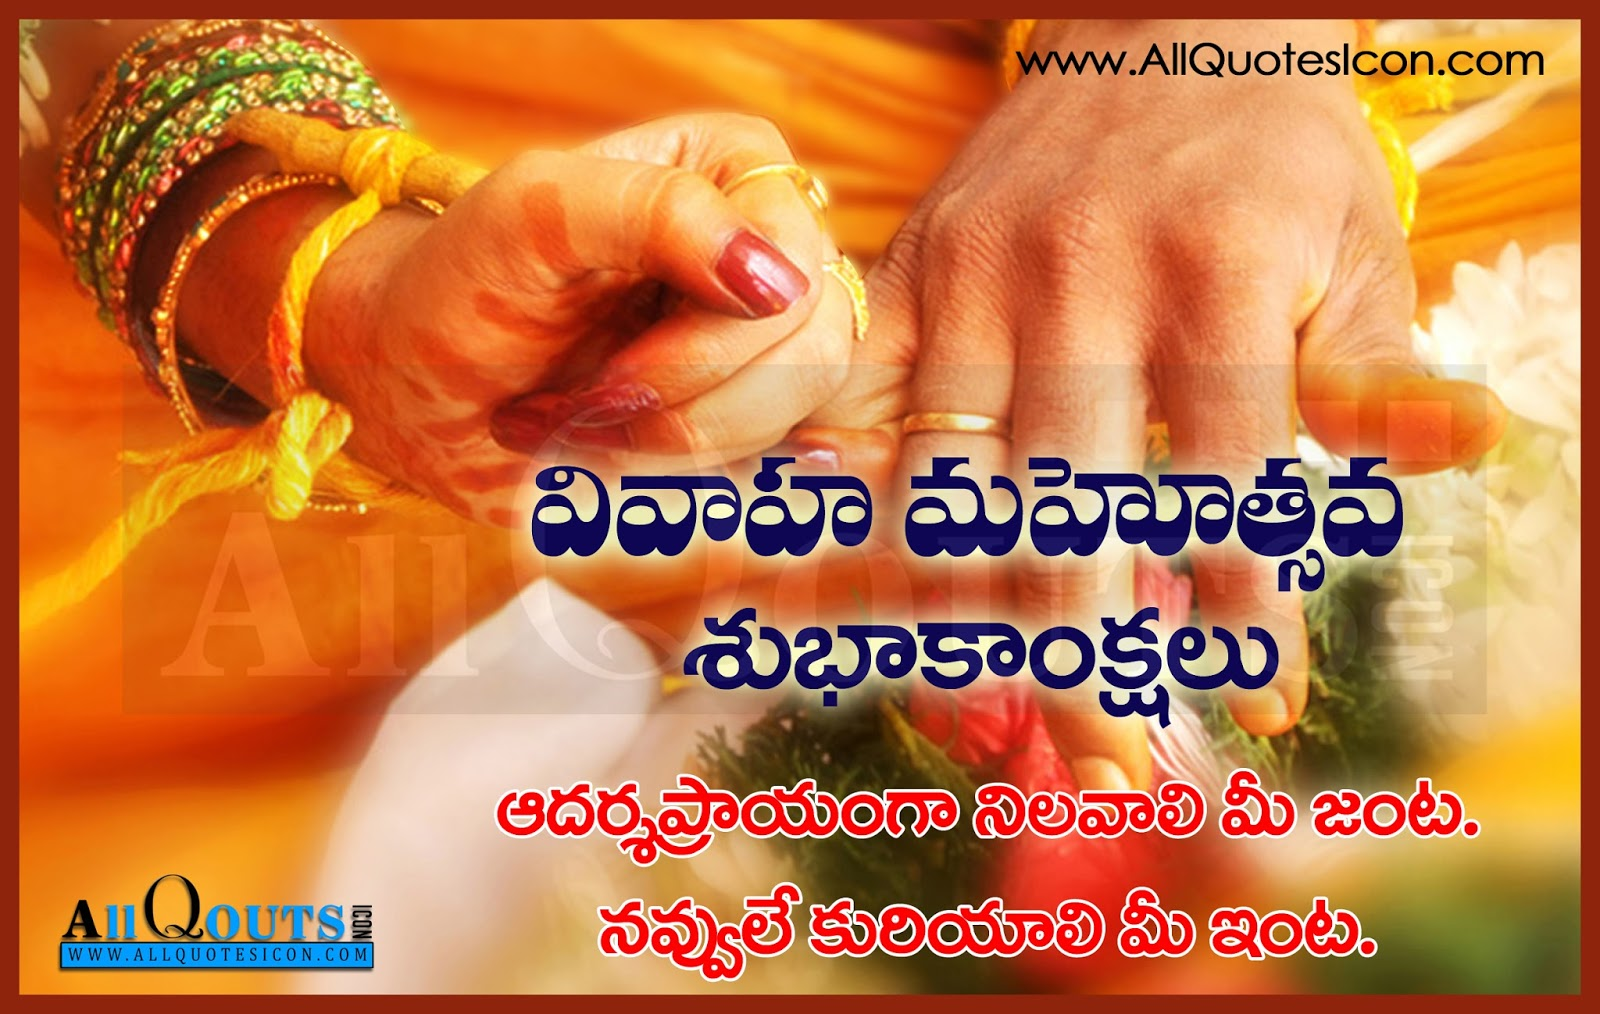 Marriage Day Quotes In Telugu Hd Wallpapers Best Marriage Day